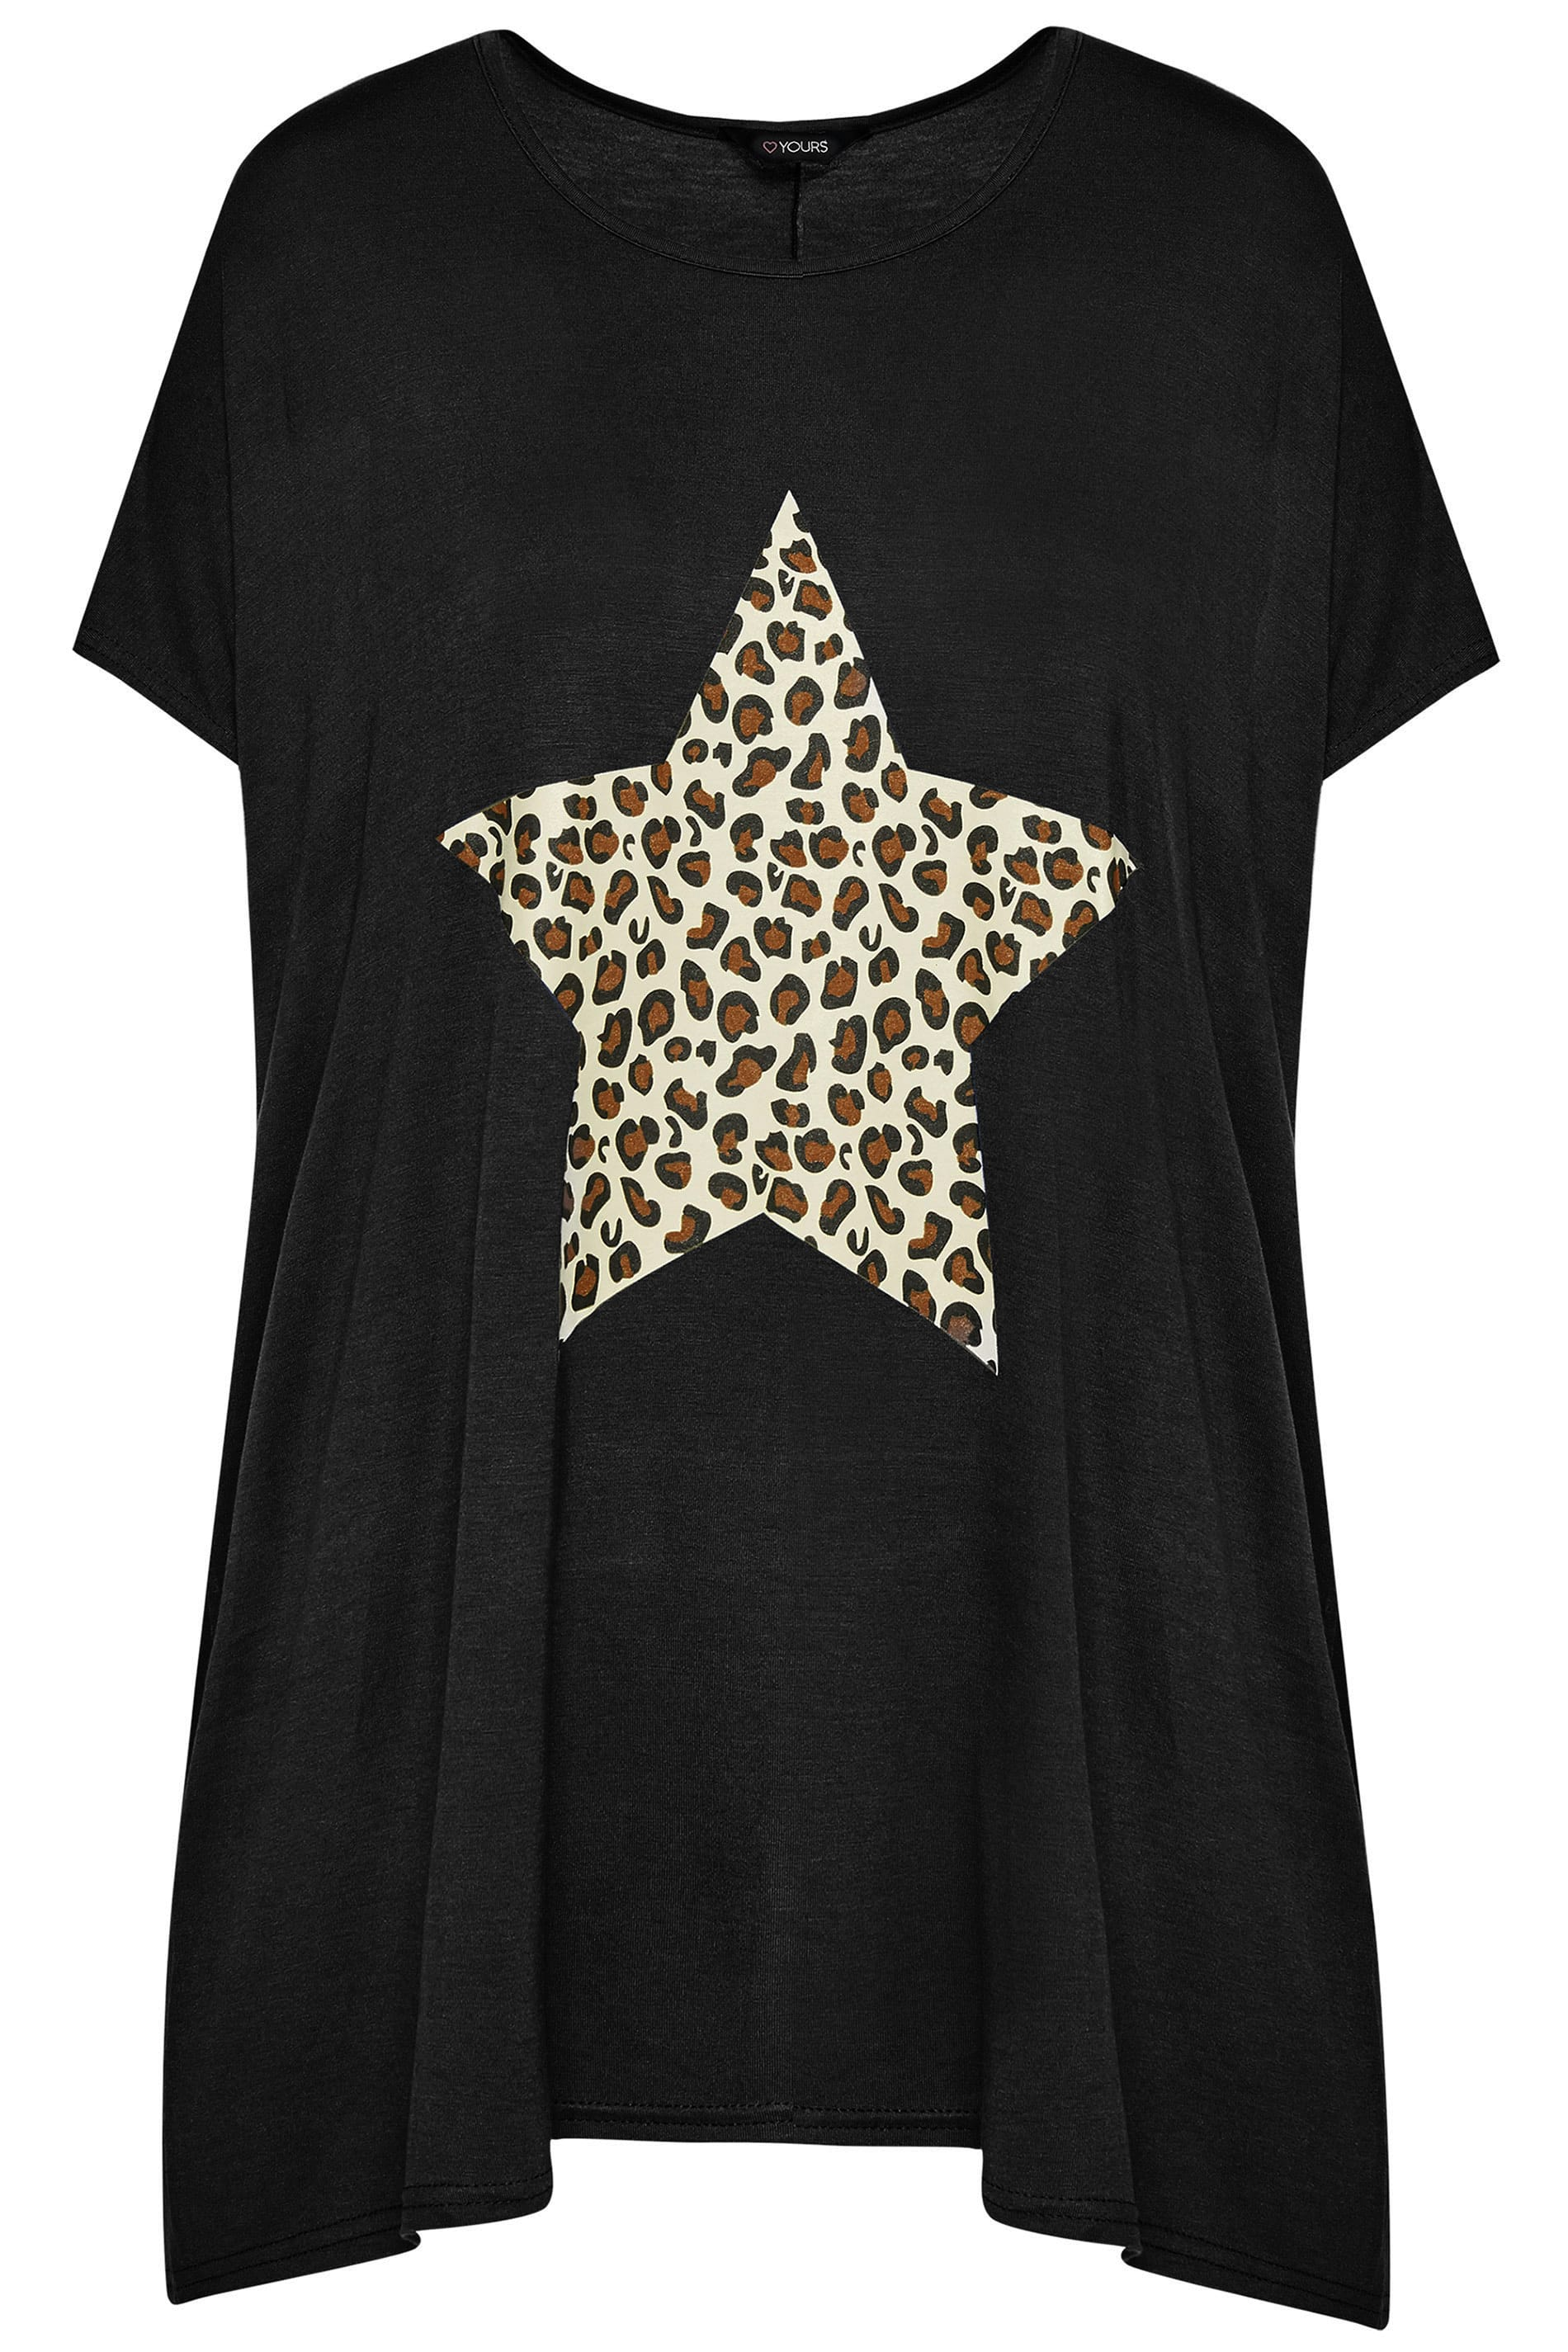 a4265a56b22d Black Leopard Star Print T-Shirt | Sizes 16-40 | Yours Clothing